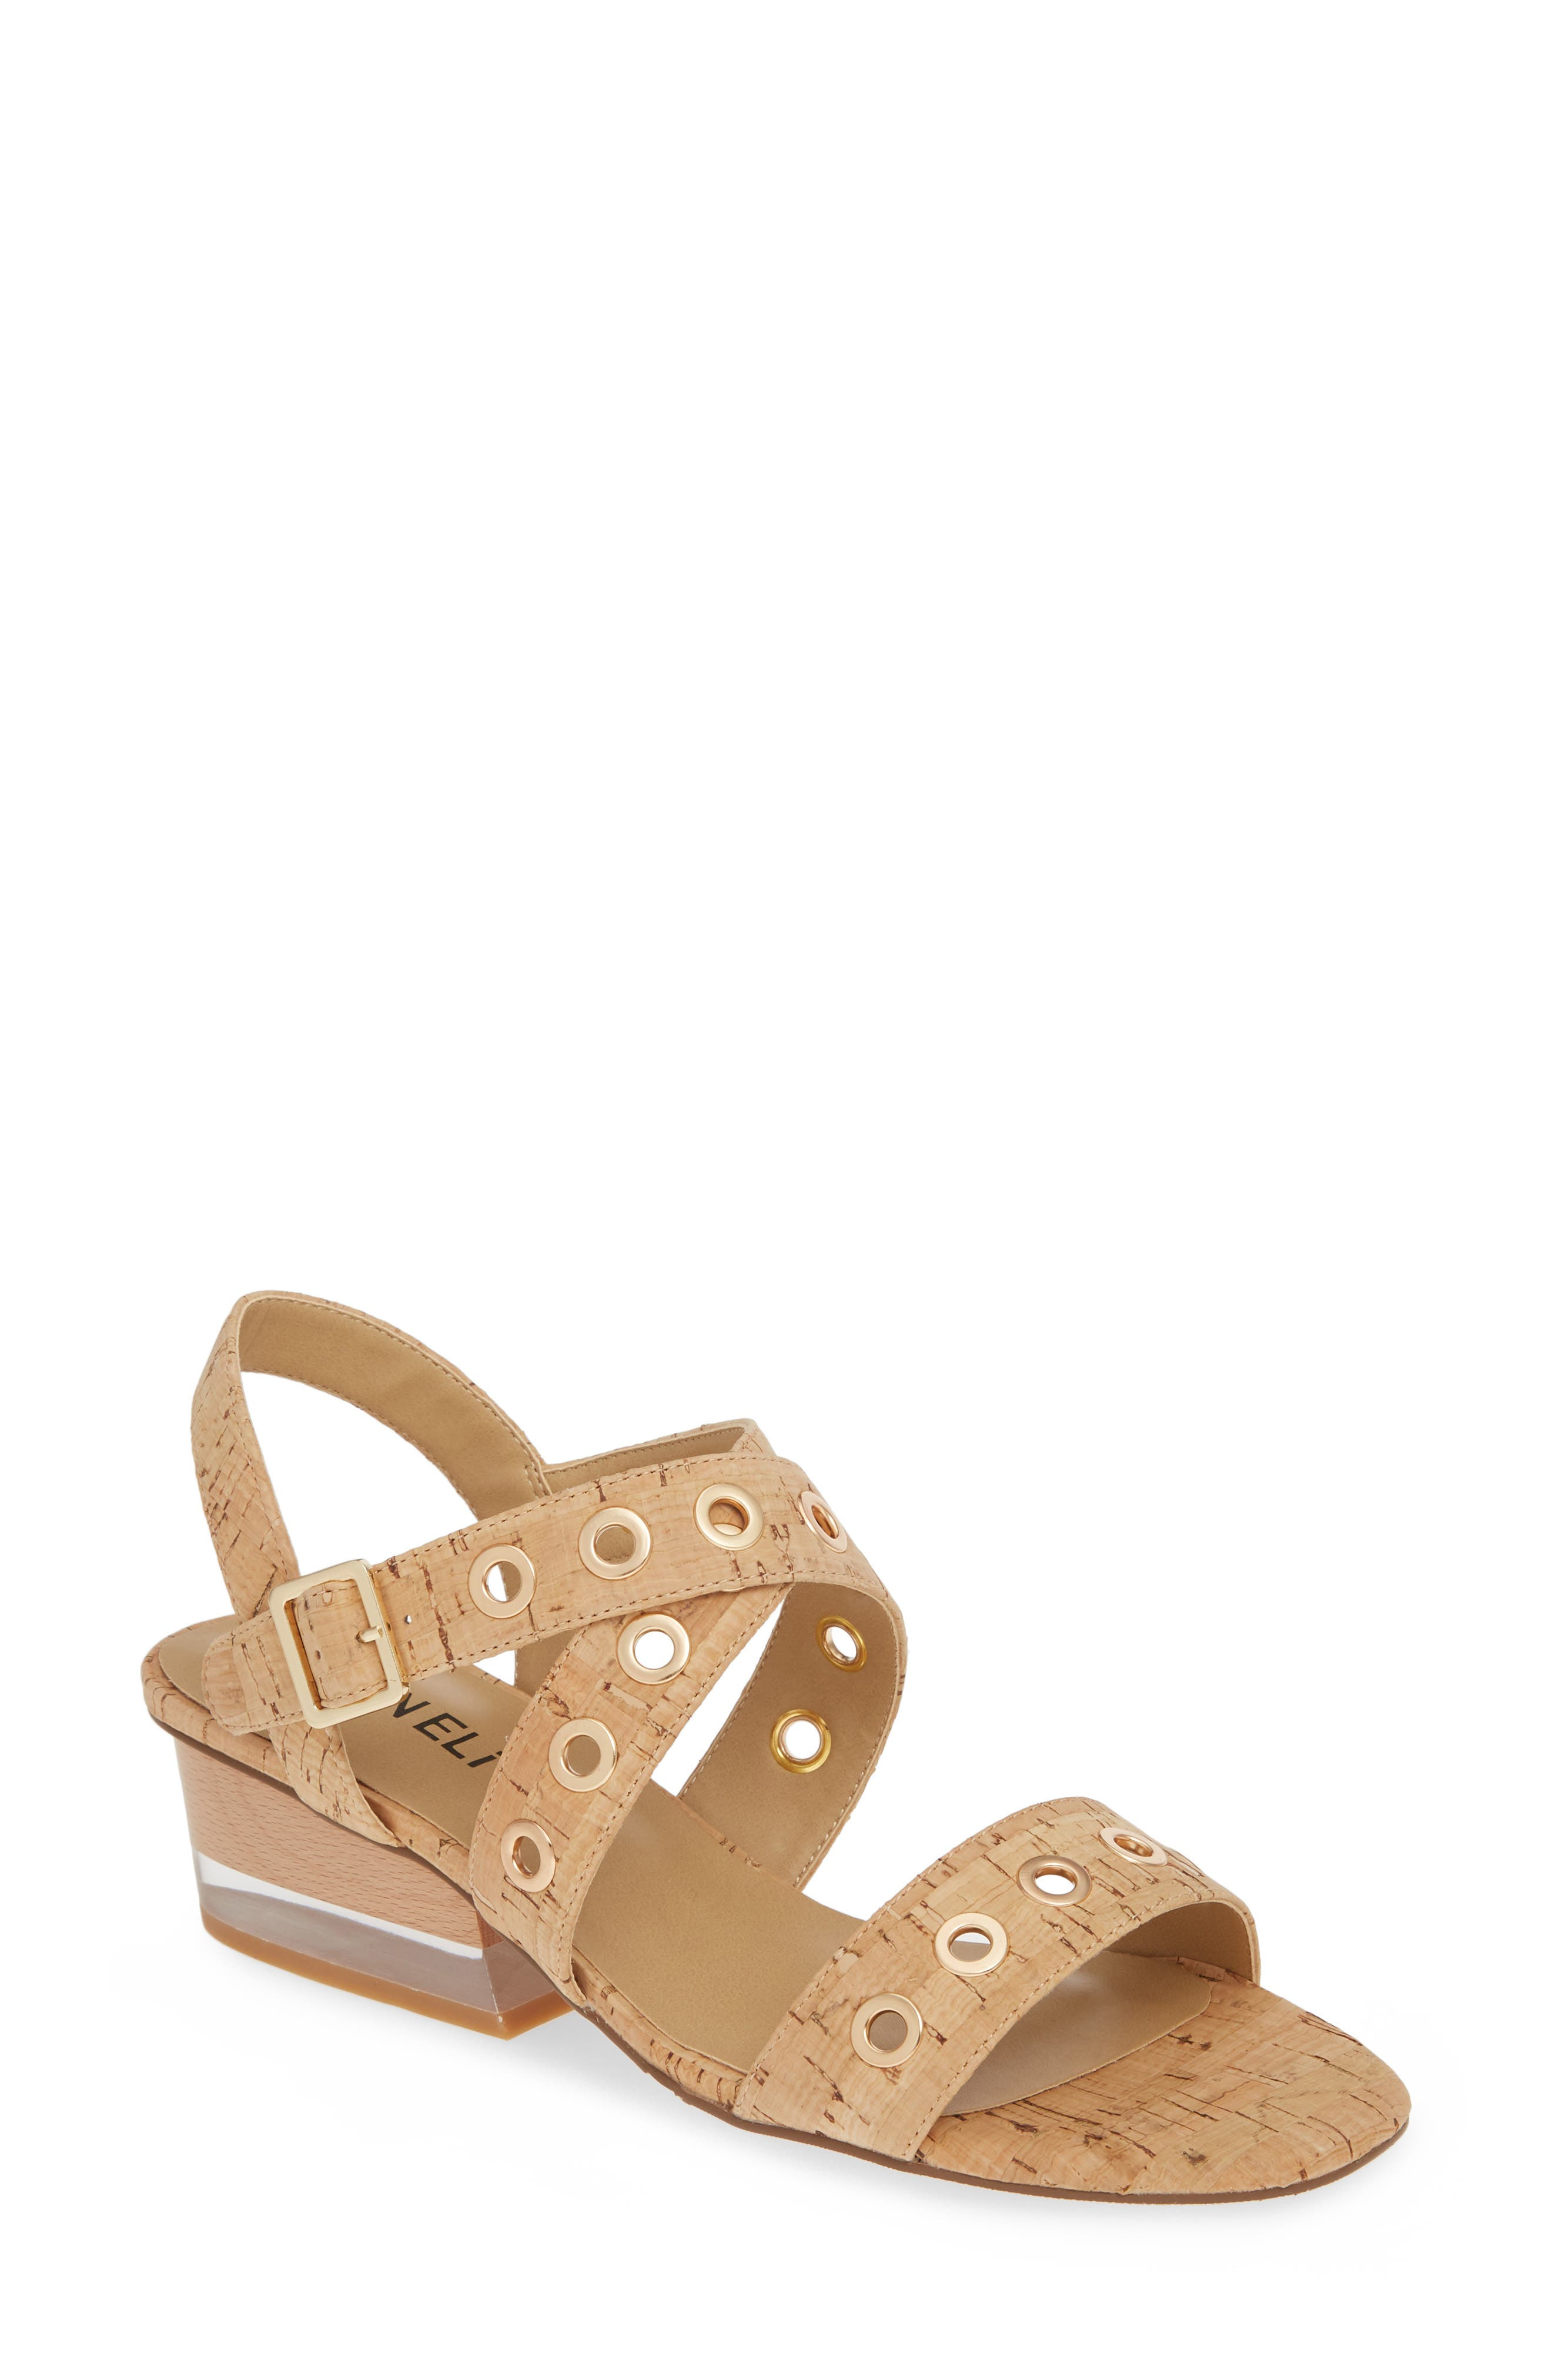 A translucent inset at the heel and oversized grommets bring contemporary sophistication to a breezy cross-strap sandal with a cushioned footbed. Style Name: Vaneli Chatel Sandal (Women). Style Number: 5790982. Available in stores.